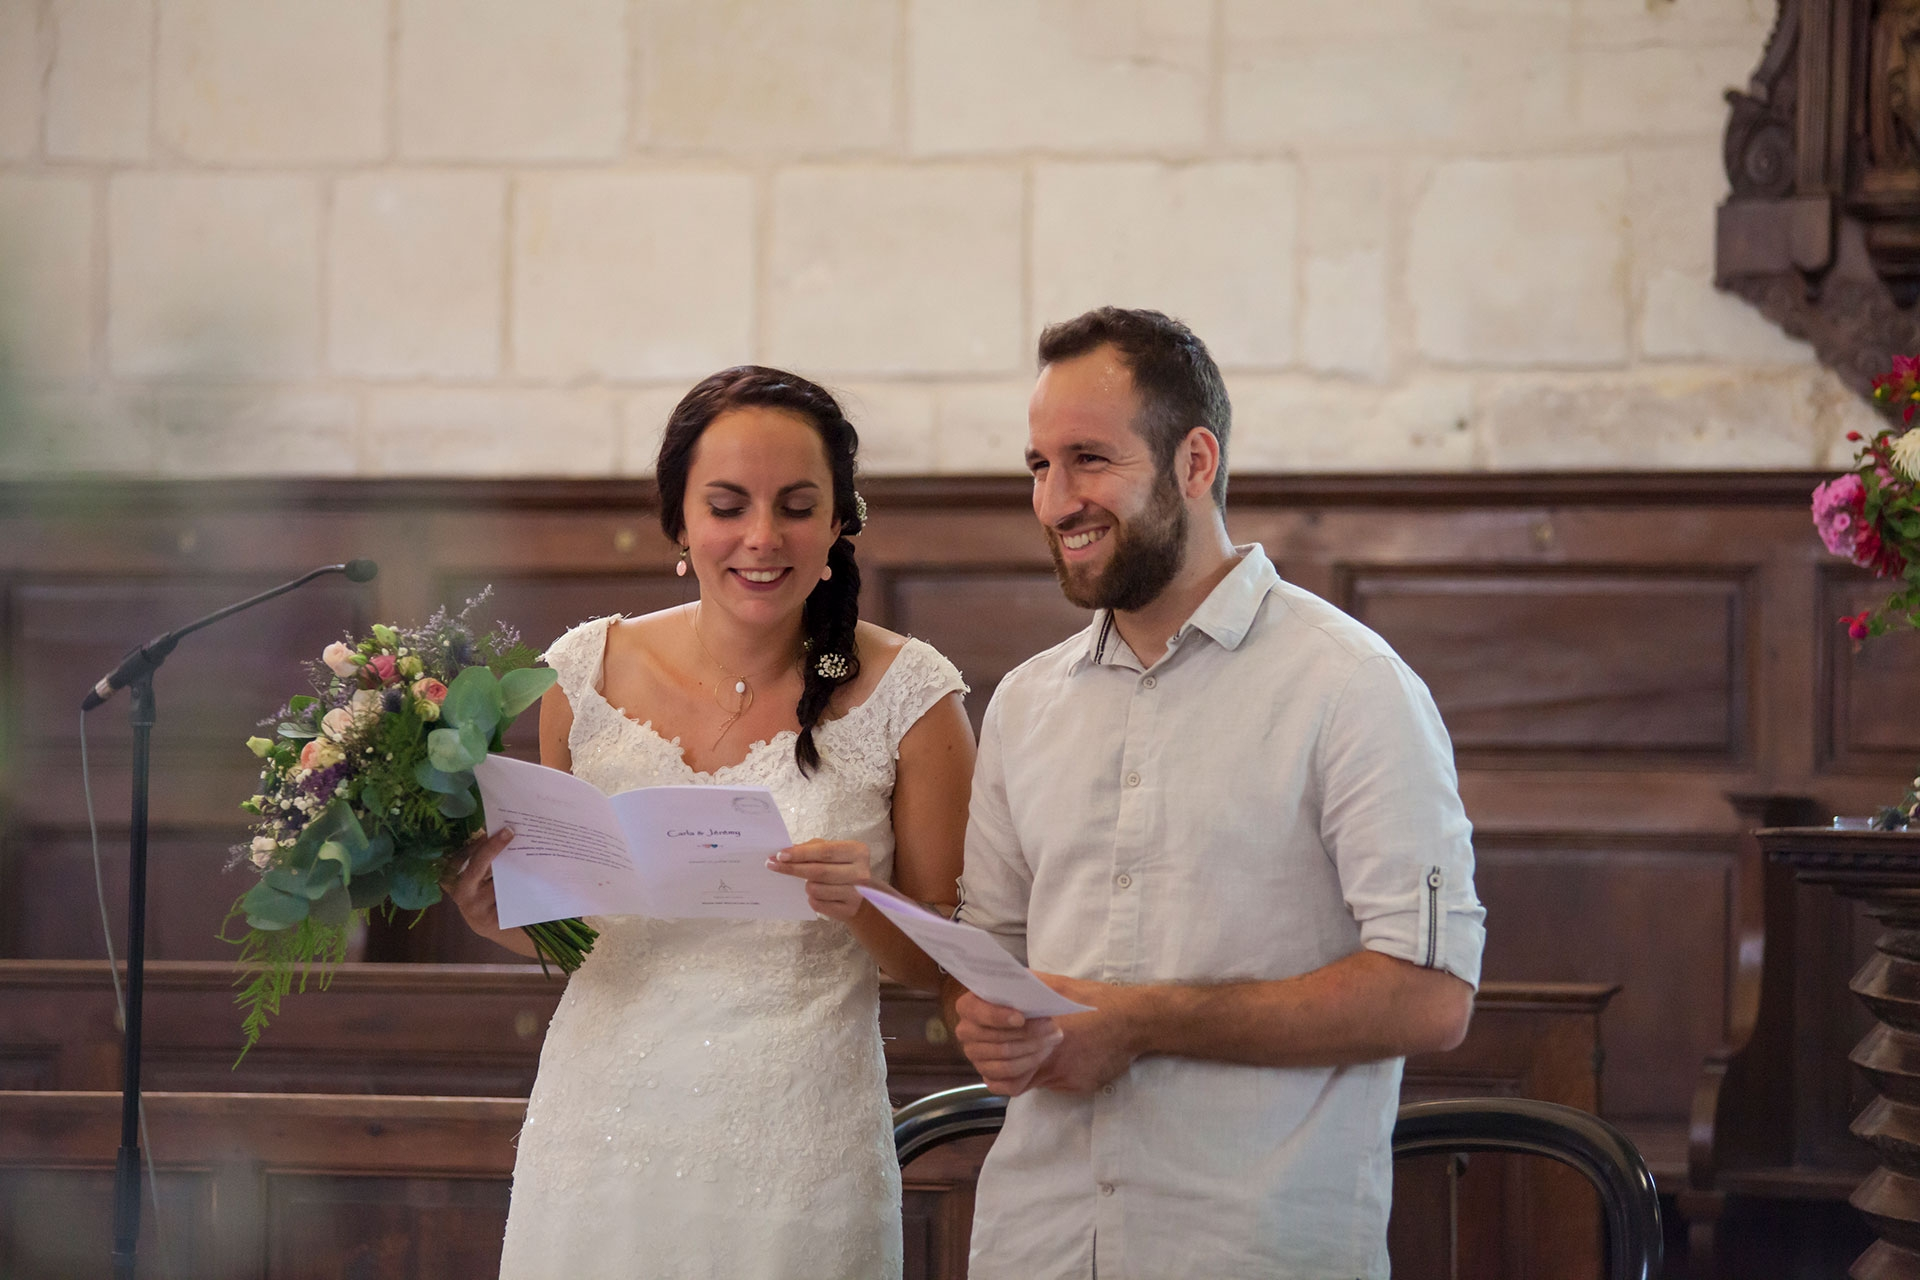 particuliers-evenements-mariage-oui-carla&jeremy-48